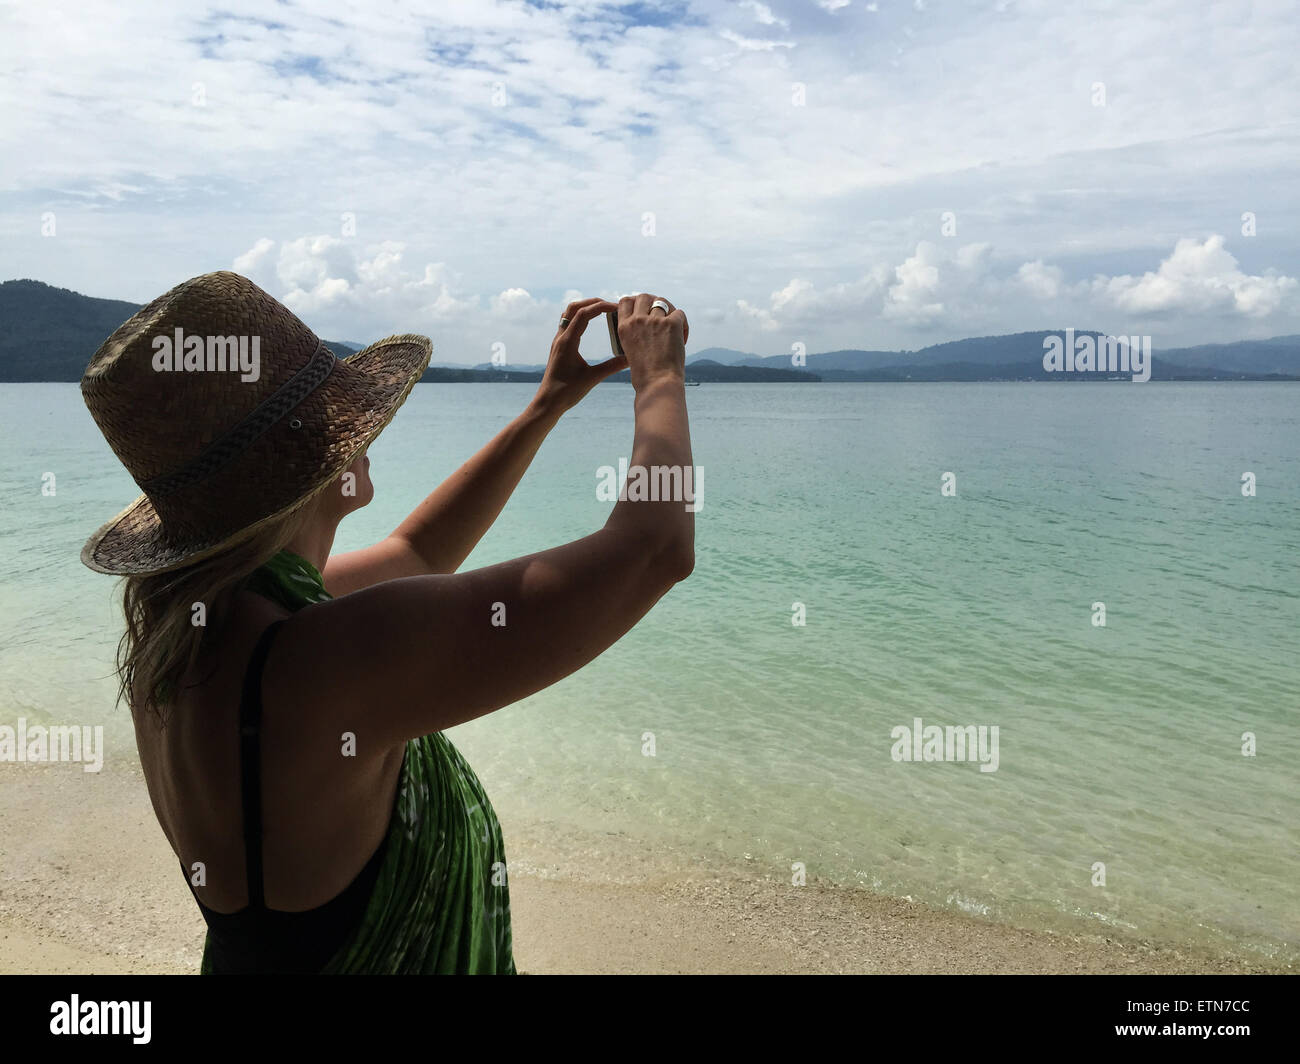 Woman on beach taking a photo - Stock Image